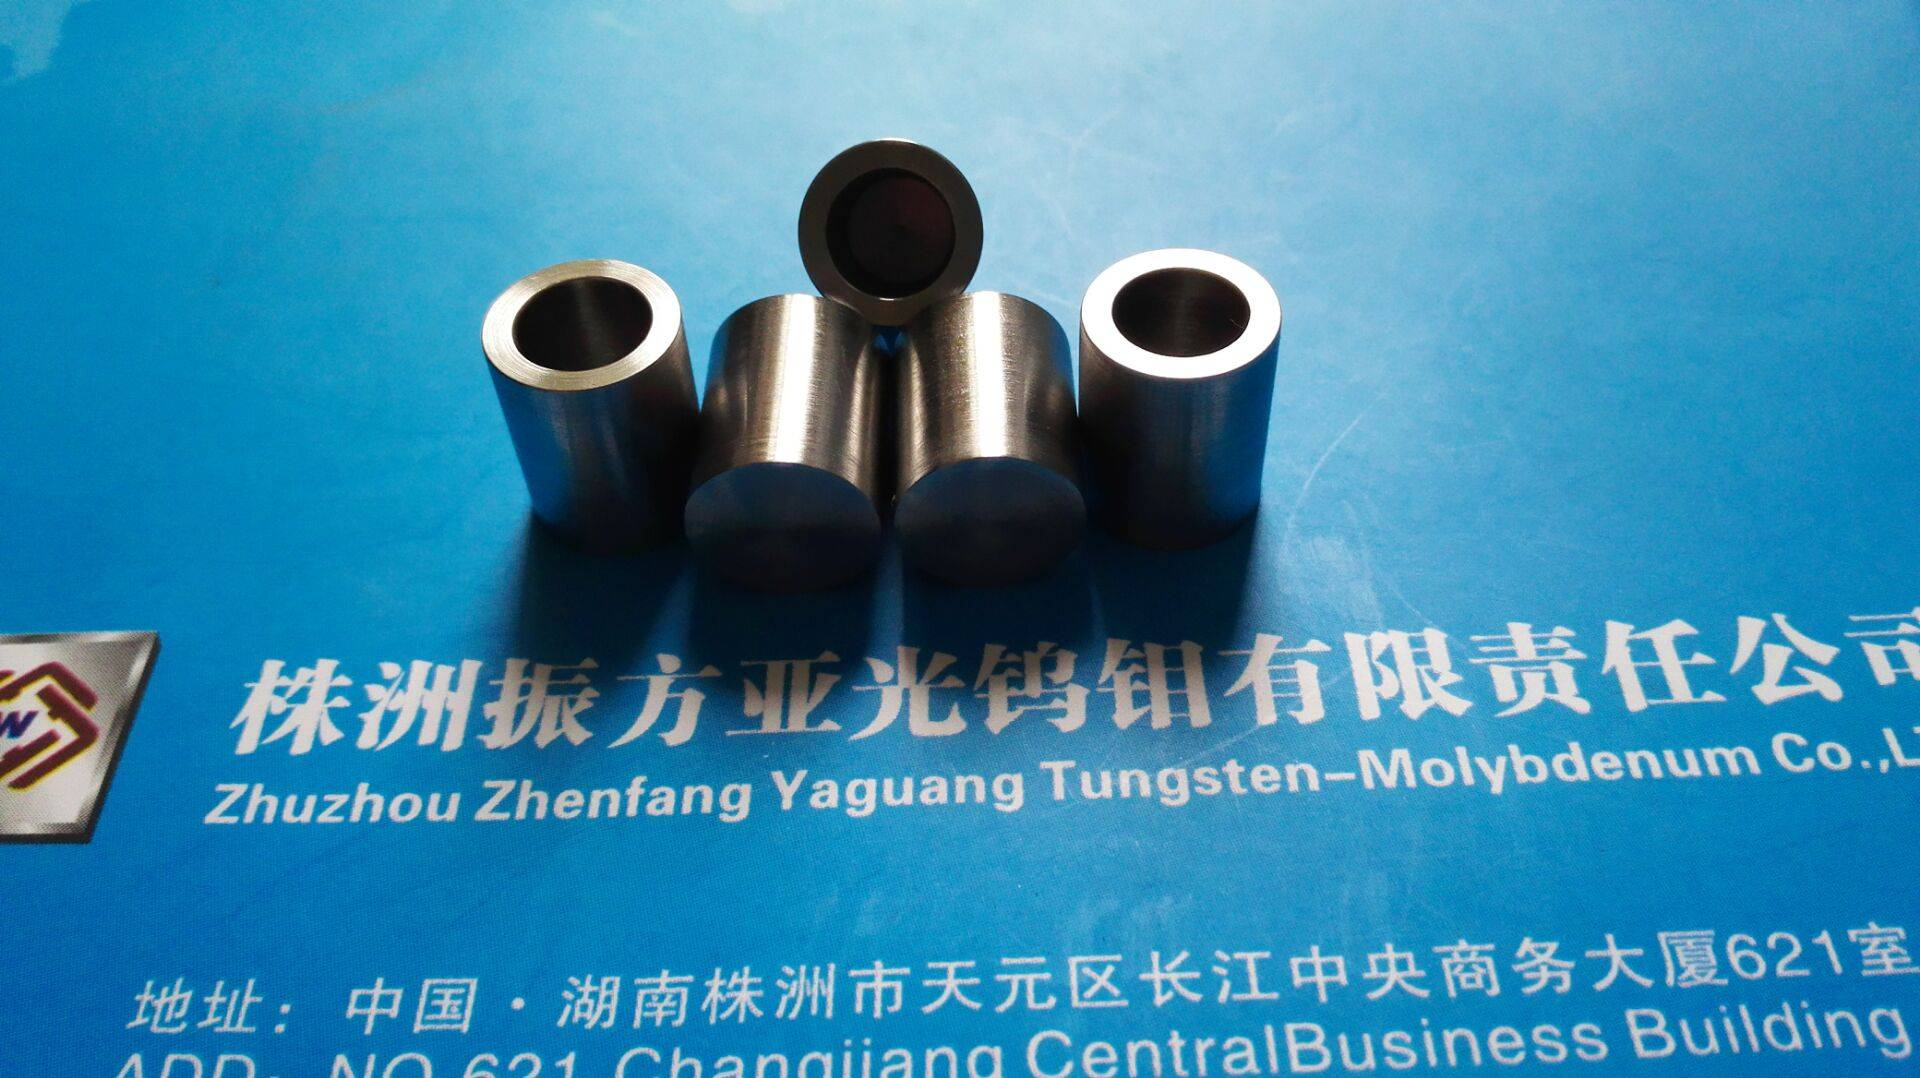 Offer Tungsten Crucible, Tungsten Molybdenum products, Pure Tungsten Rods, Tungsten Electrodes,